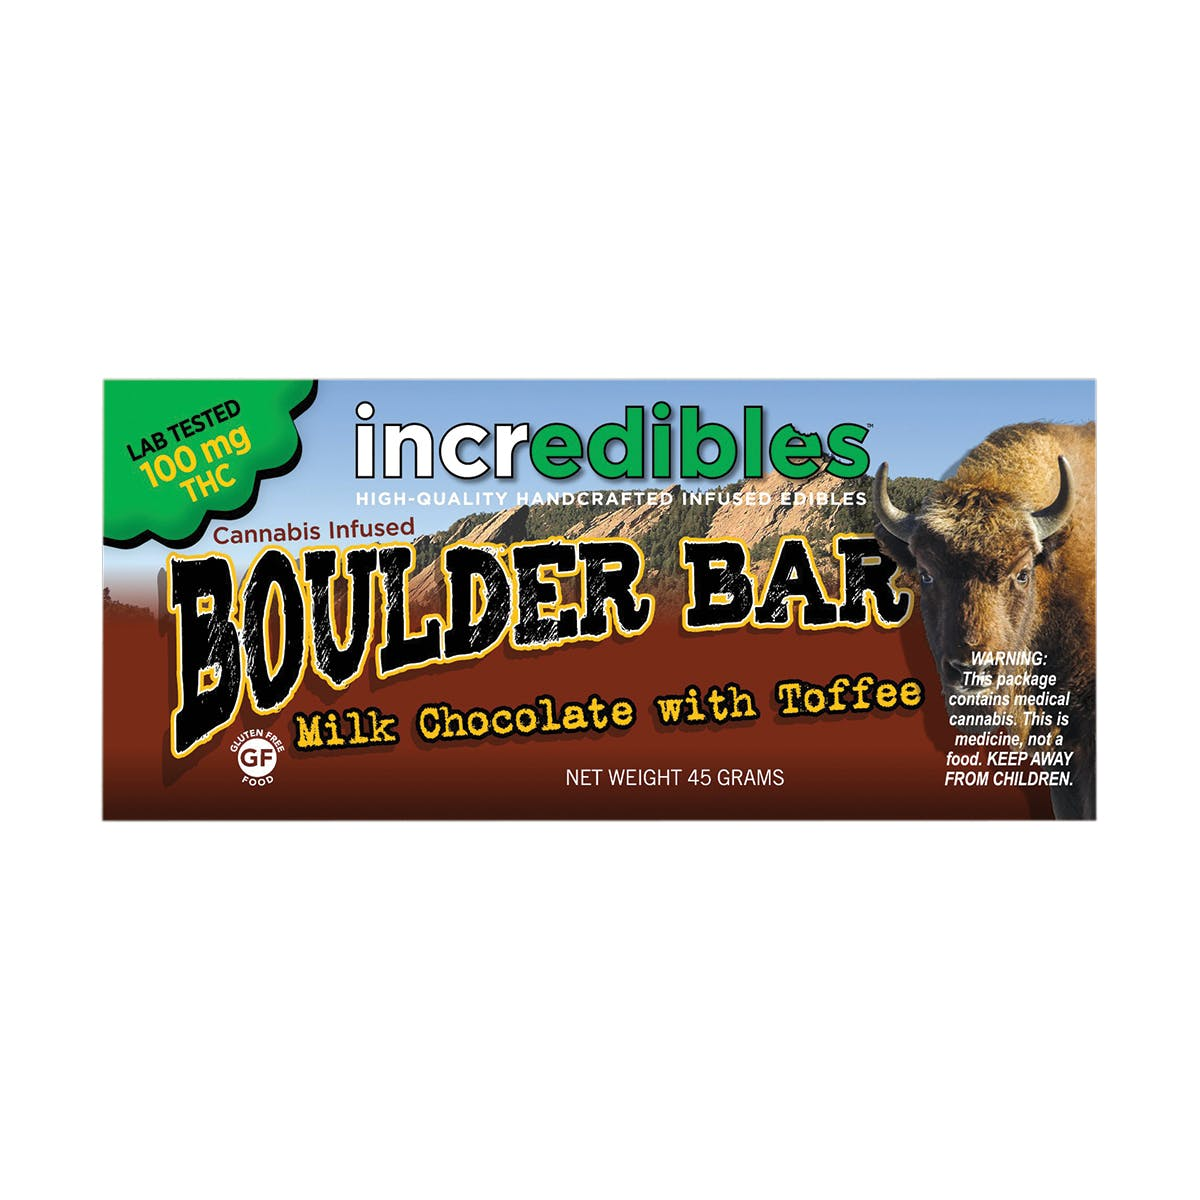 marijuana-dispensaries-420-green-genie-in-antonito-boulder-bar-2c-100mg